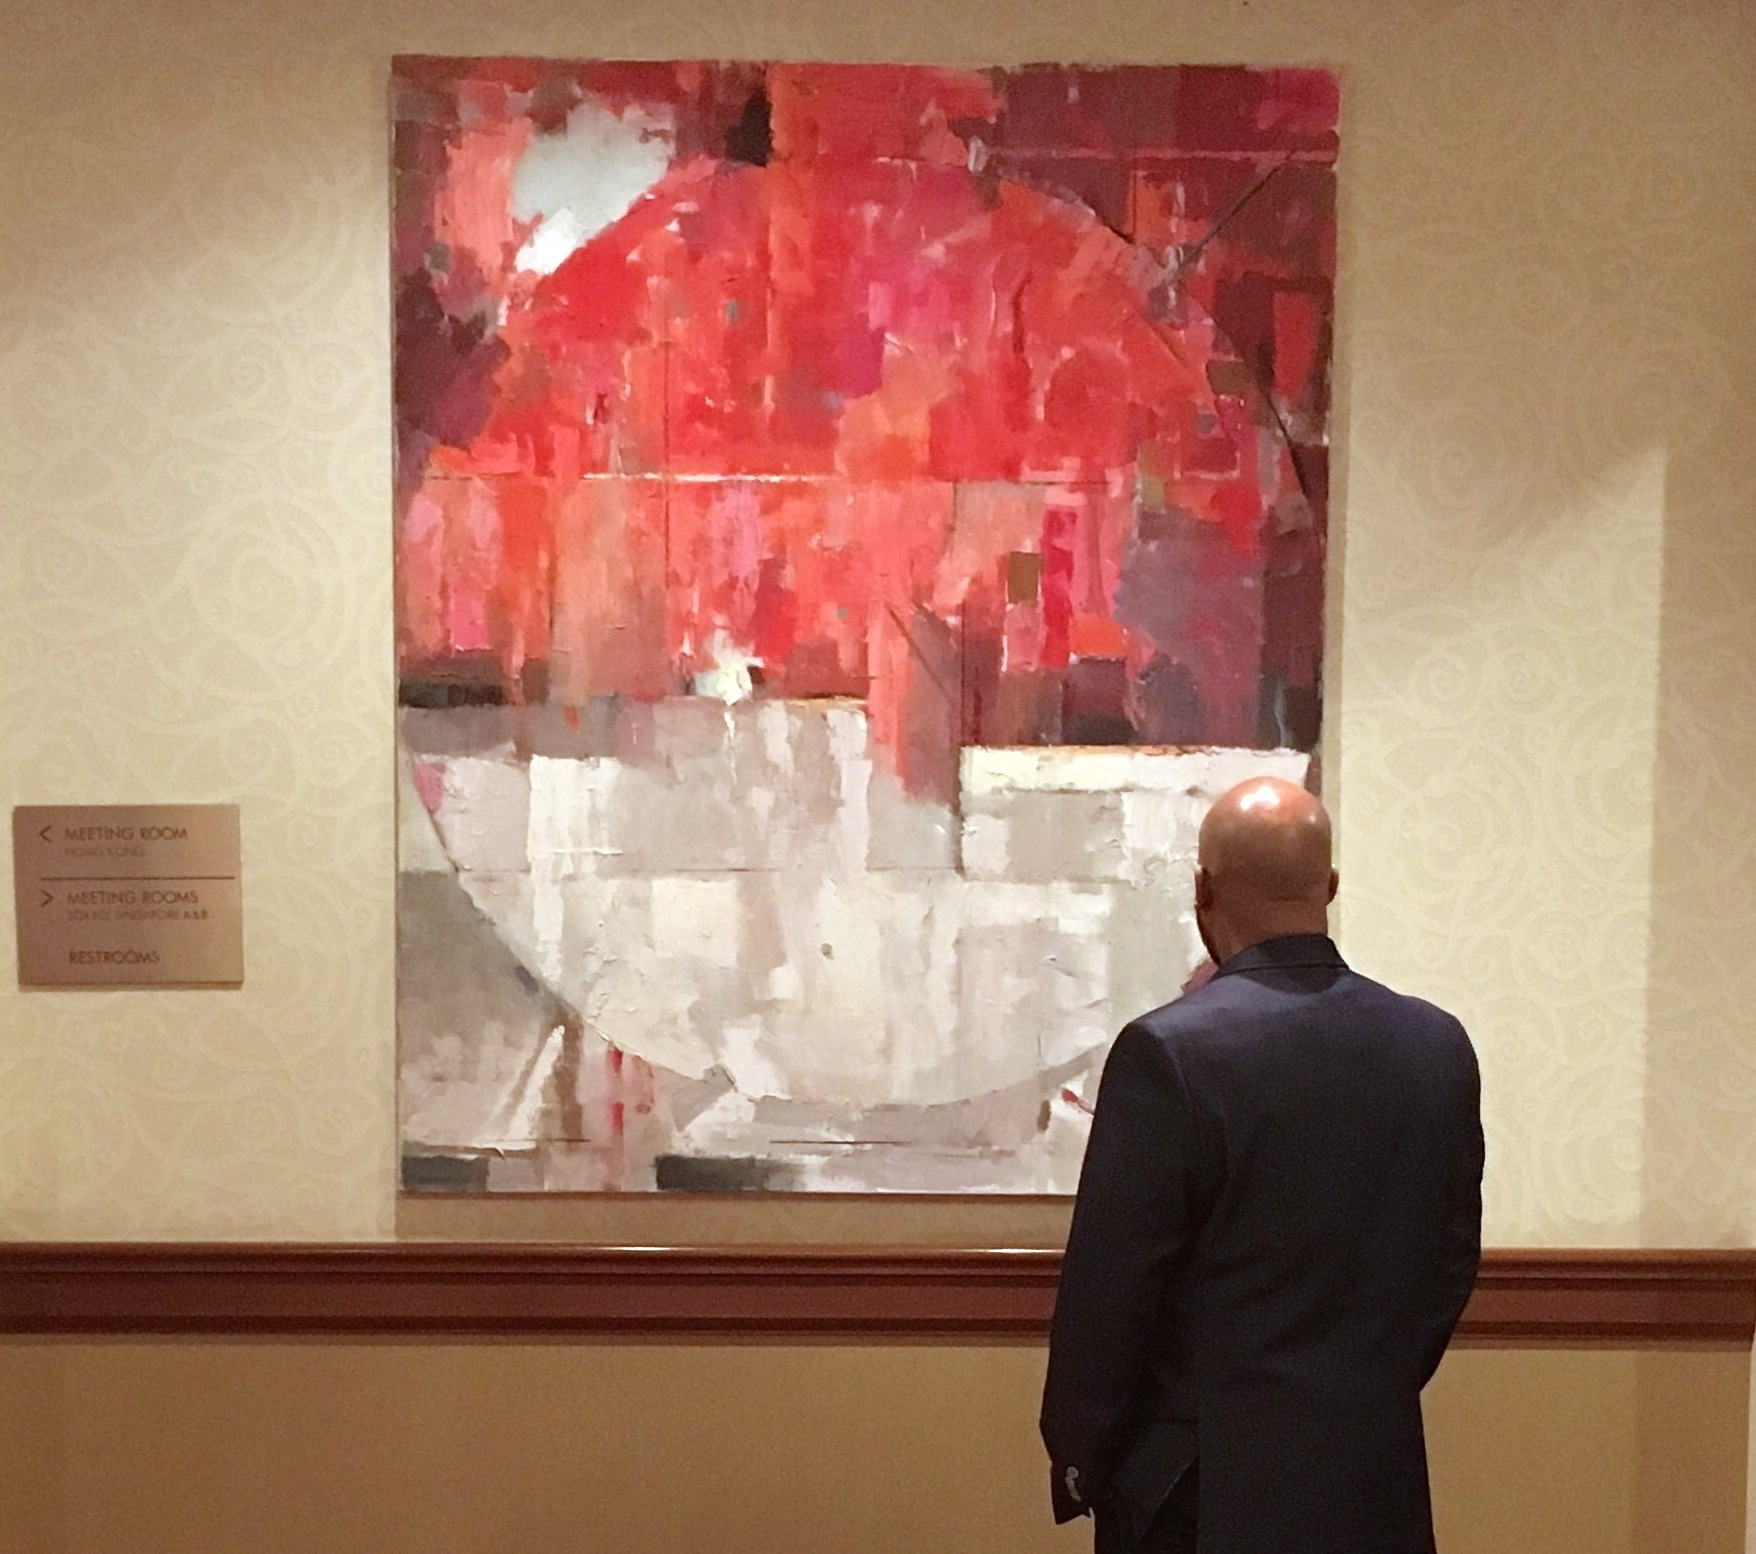 ABSTRACT ART IS MUSIC FOR YOUR EYES -